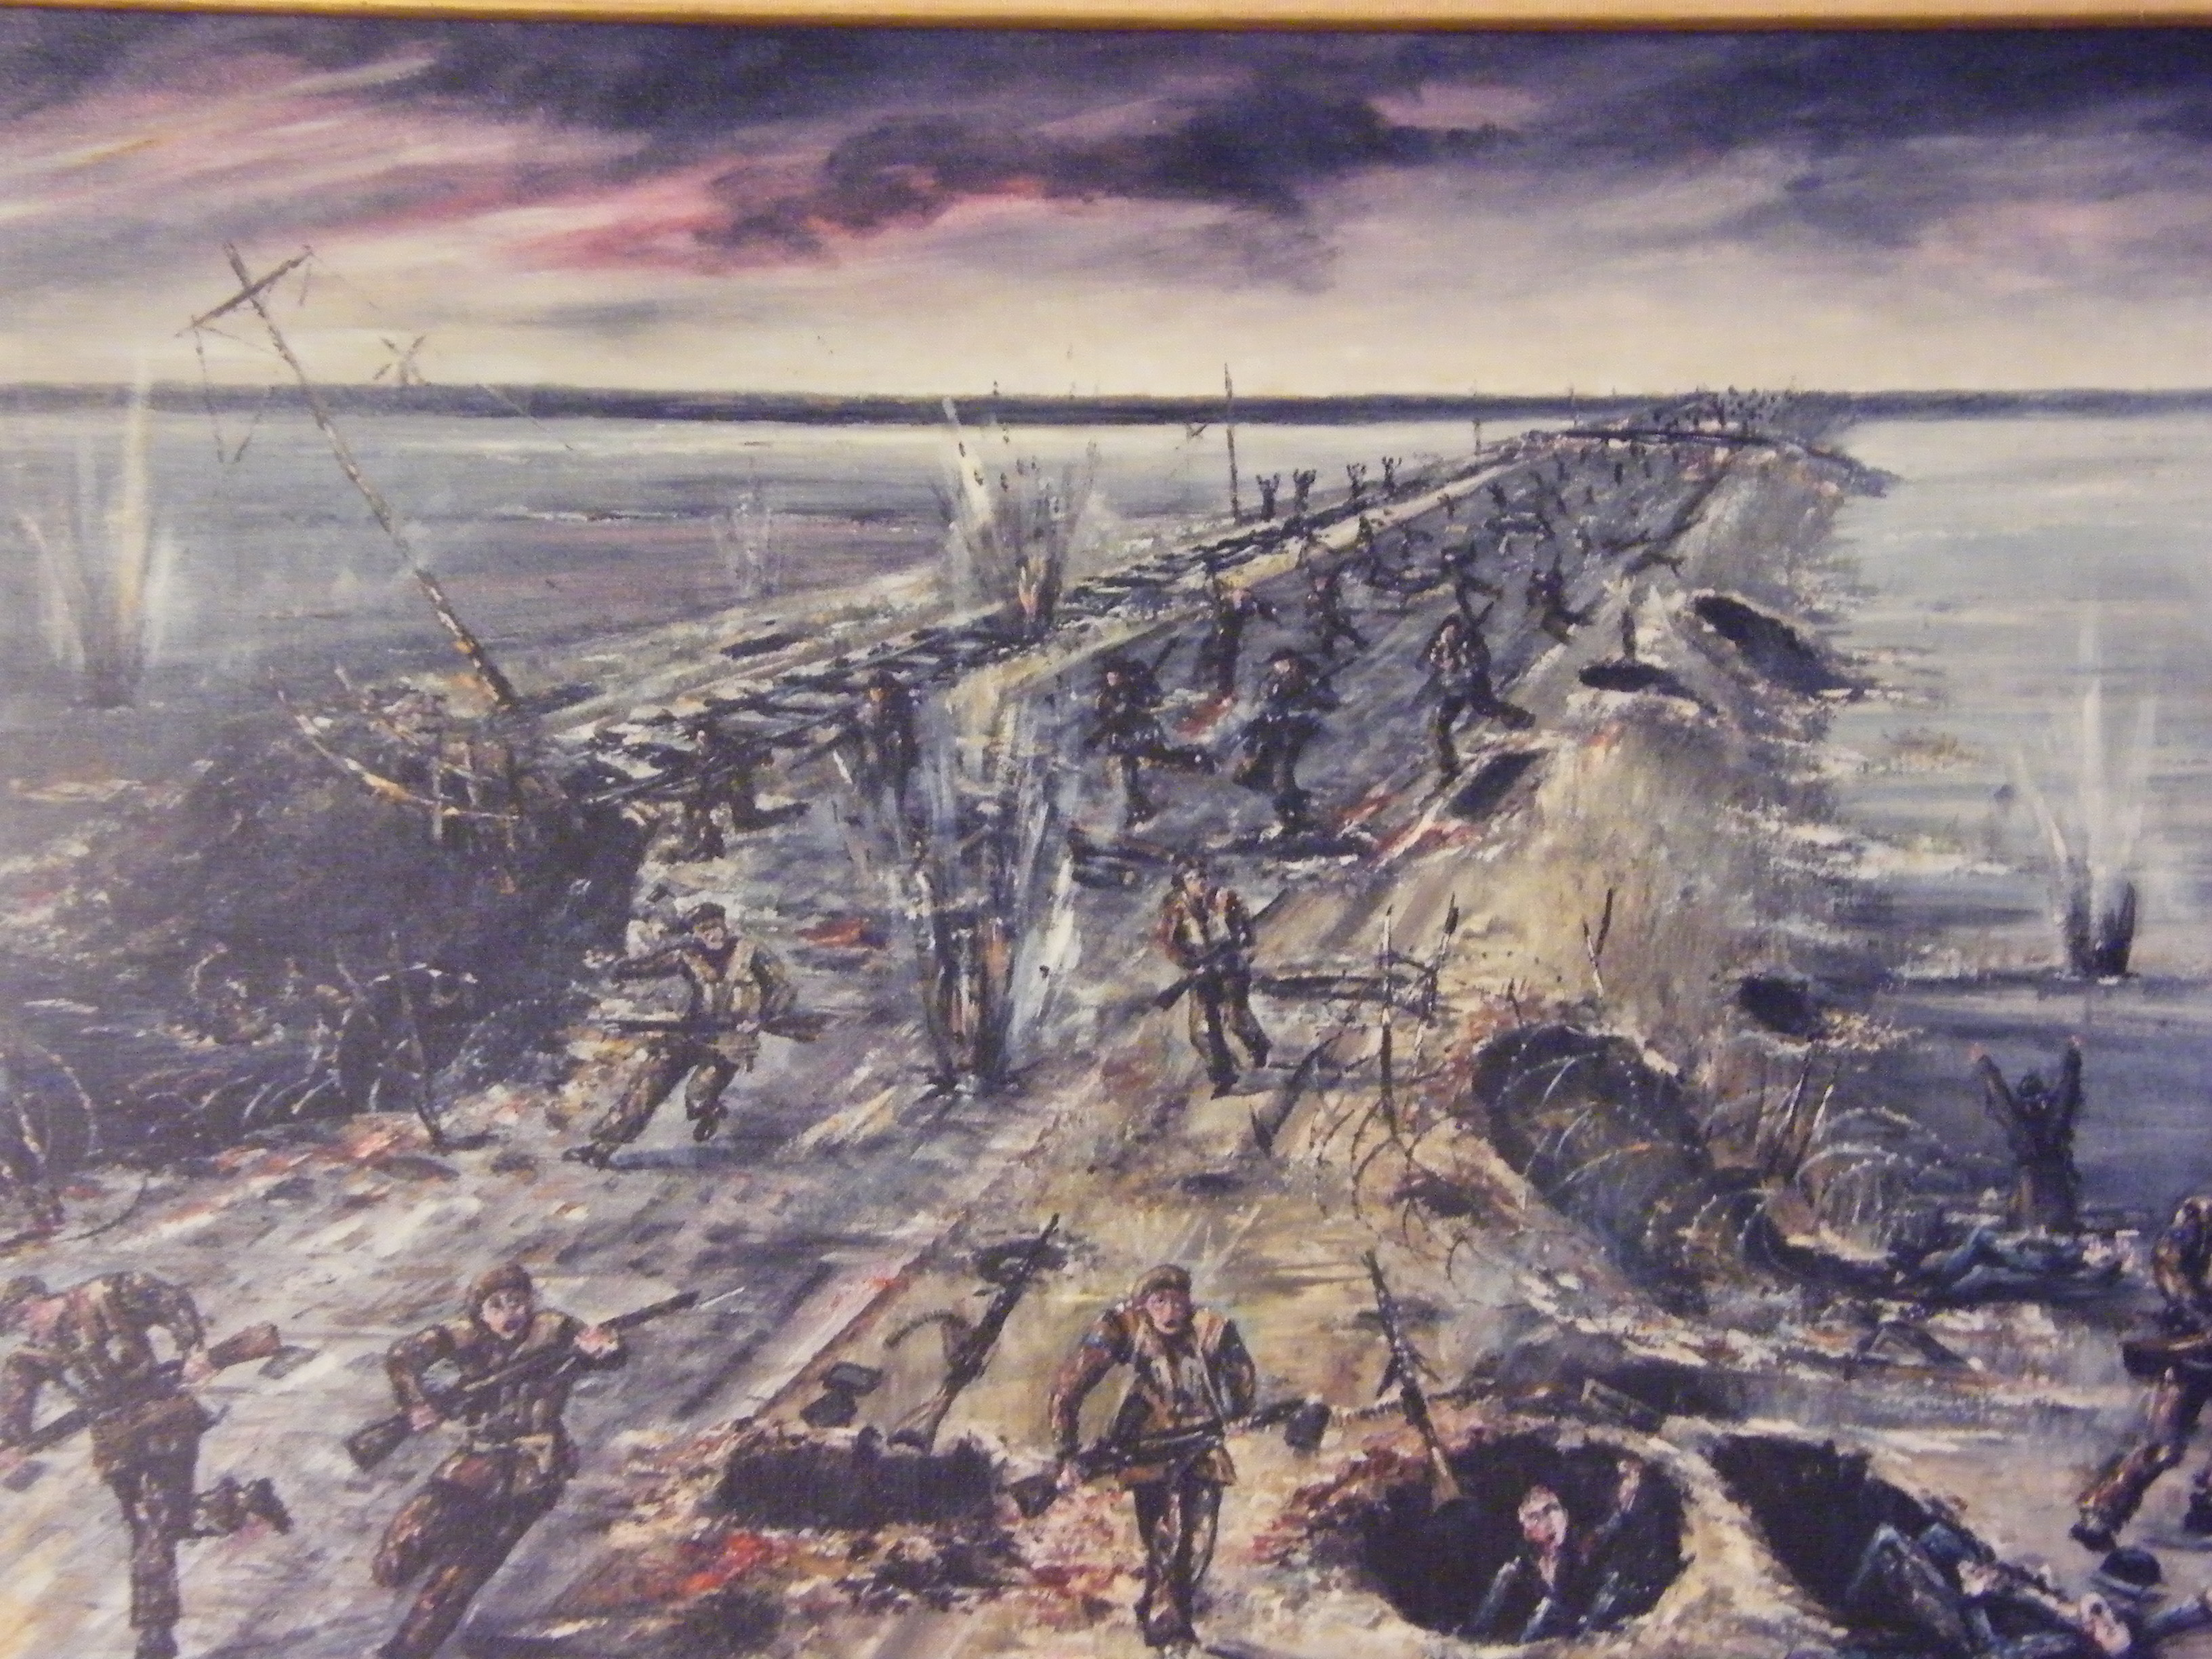 392. The assault on the Walcheren Causeway